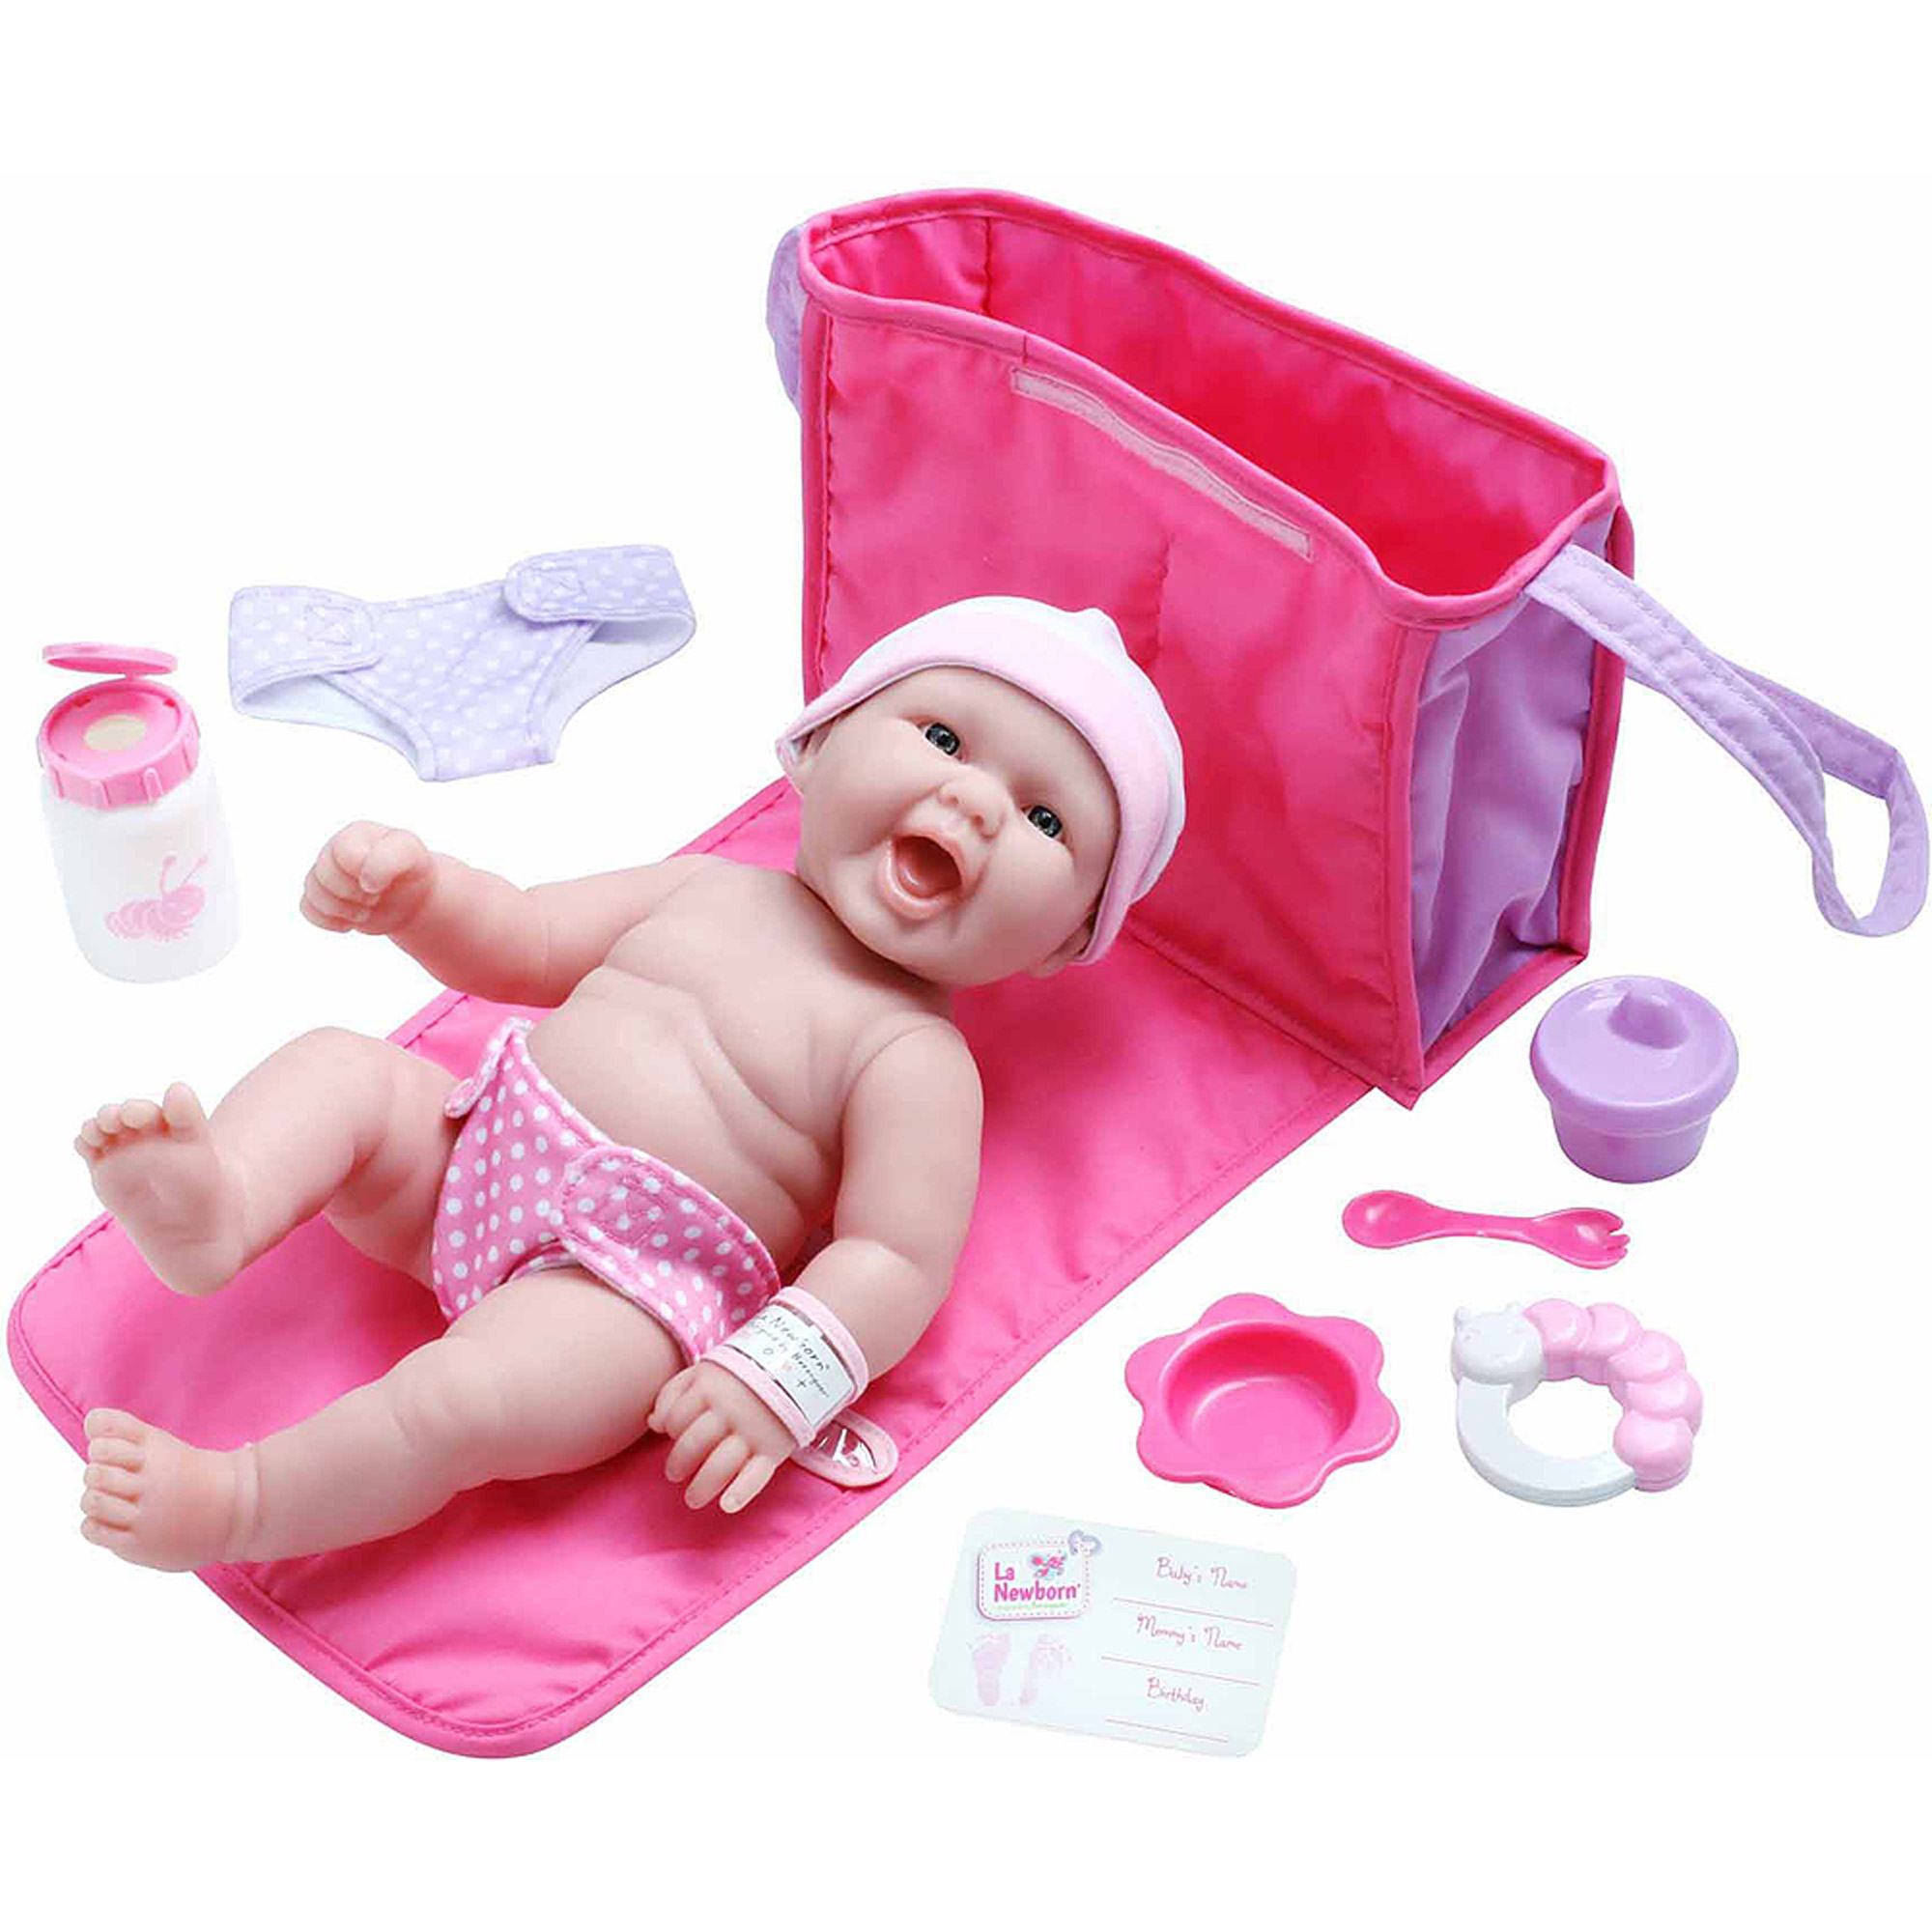 "La Newborn 13"" Life-Like All-Vinyl Baby Doll Diaper Bag and Accessory Gift Set"